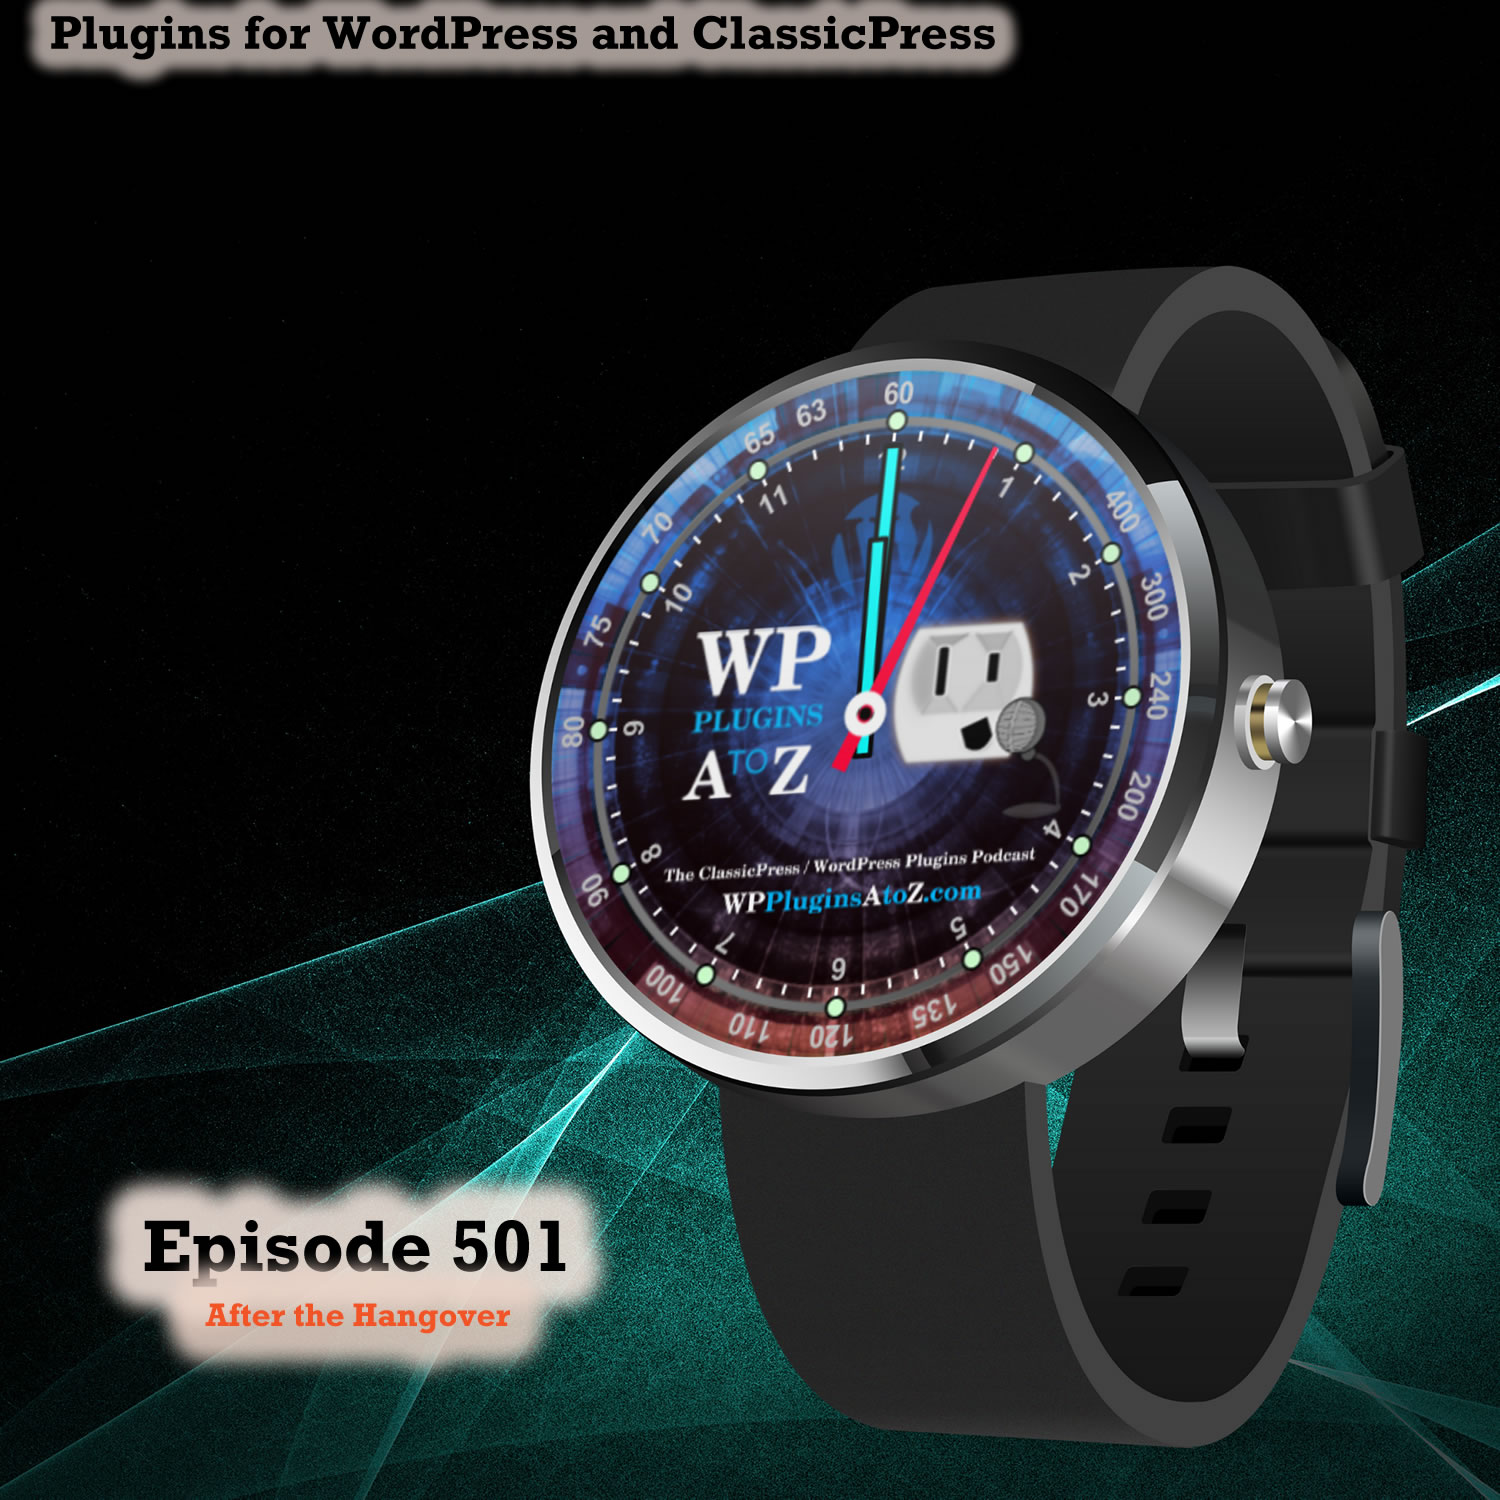 After the Hangover It's Episode 501 - We have plugins for Tracking, Trapping, Redirecting, Shipping, New Images, Security....., and ClassicPress Options. It's all coming up on WordPress Plugins A-Z! Foxlis Geo, Easy WebP – Speed Up your website by serving WebP images, a2z canada post automated shipping for WooCommerce, 2BC Form Security, Form Spammer Trap for Comments, Anti Hacker Redirect and ClassicPress options on Episode 501